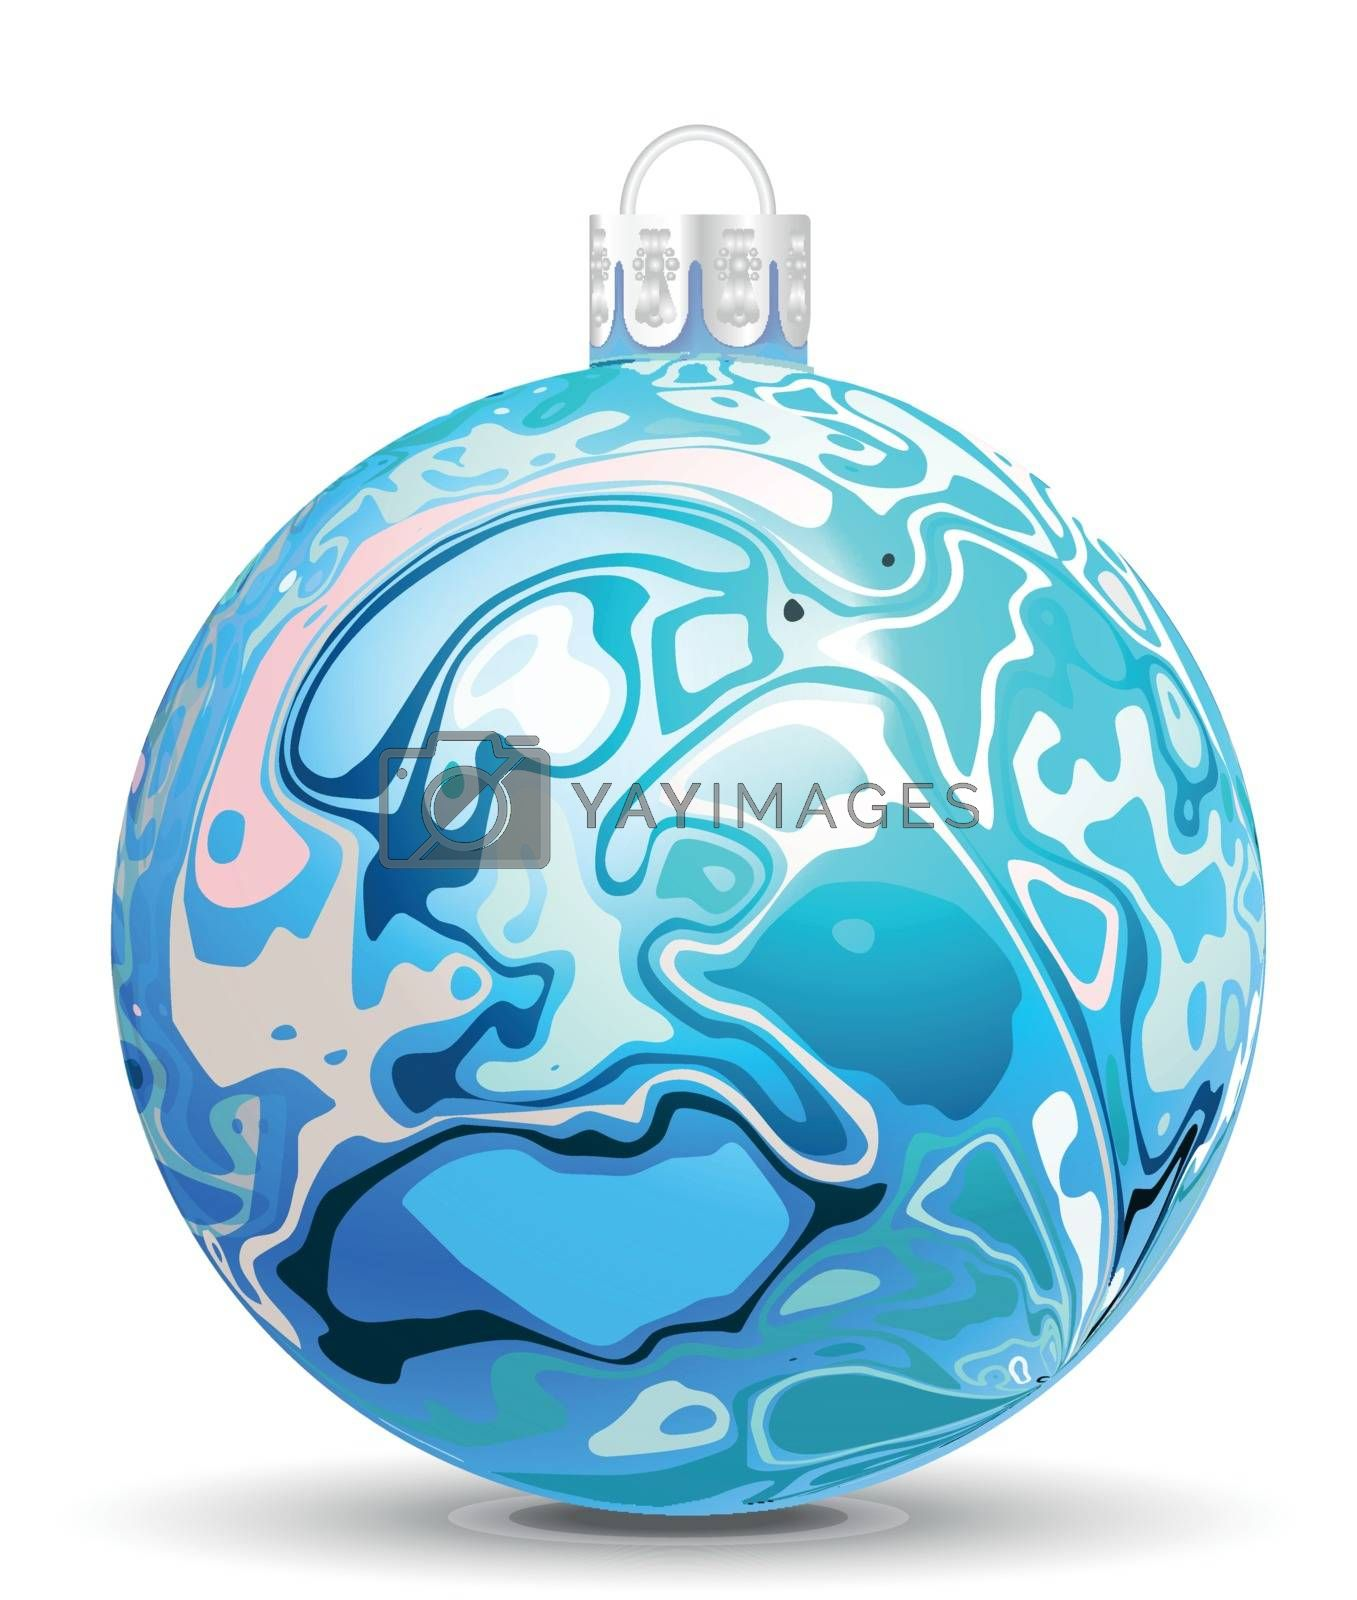 Royalty free image of Christmas vector ball in the style of Marble Ink by sermax55